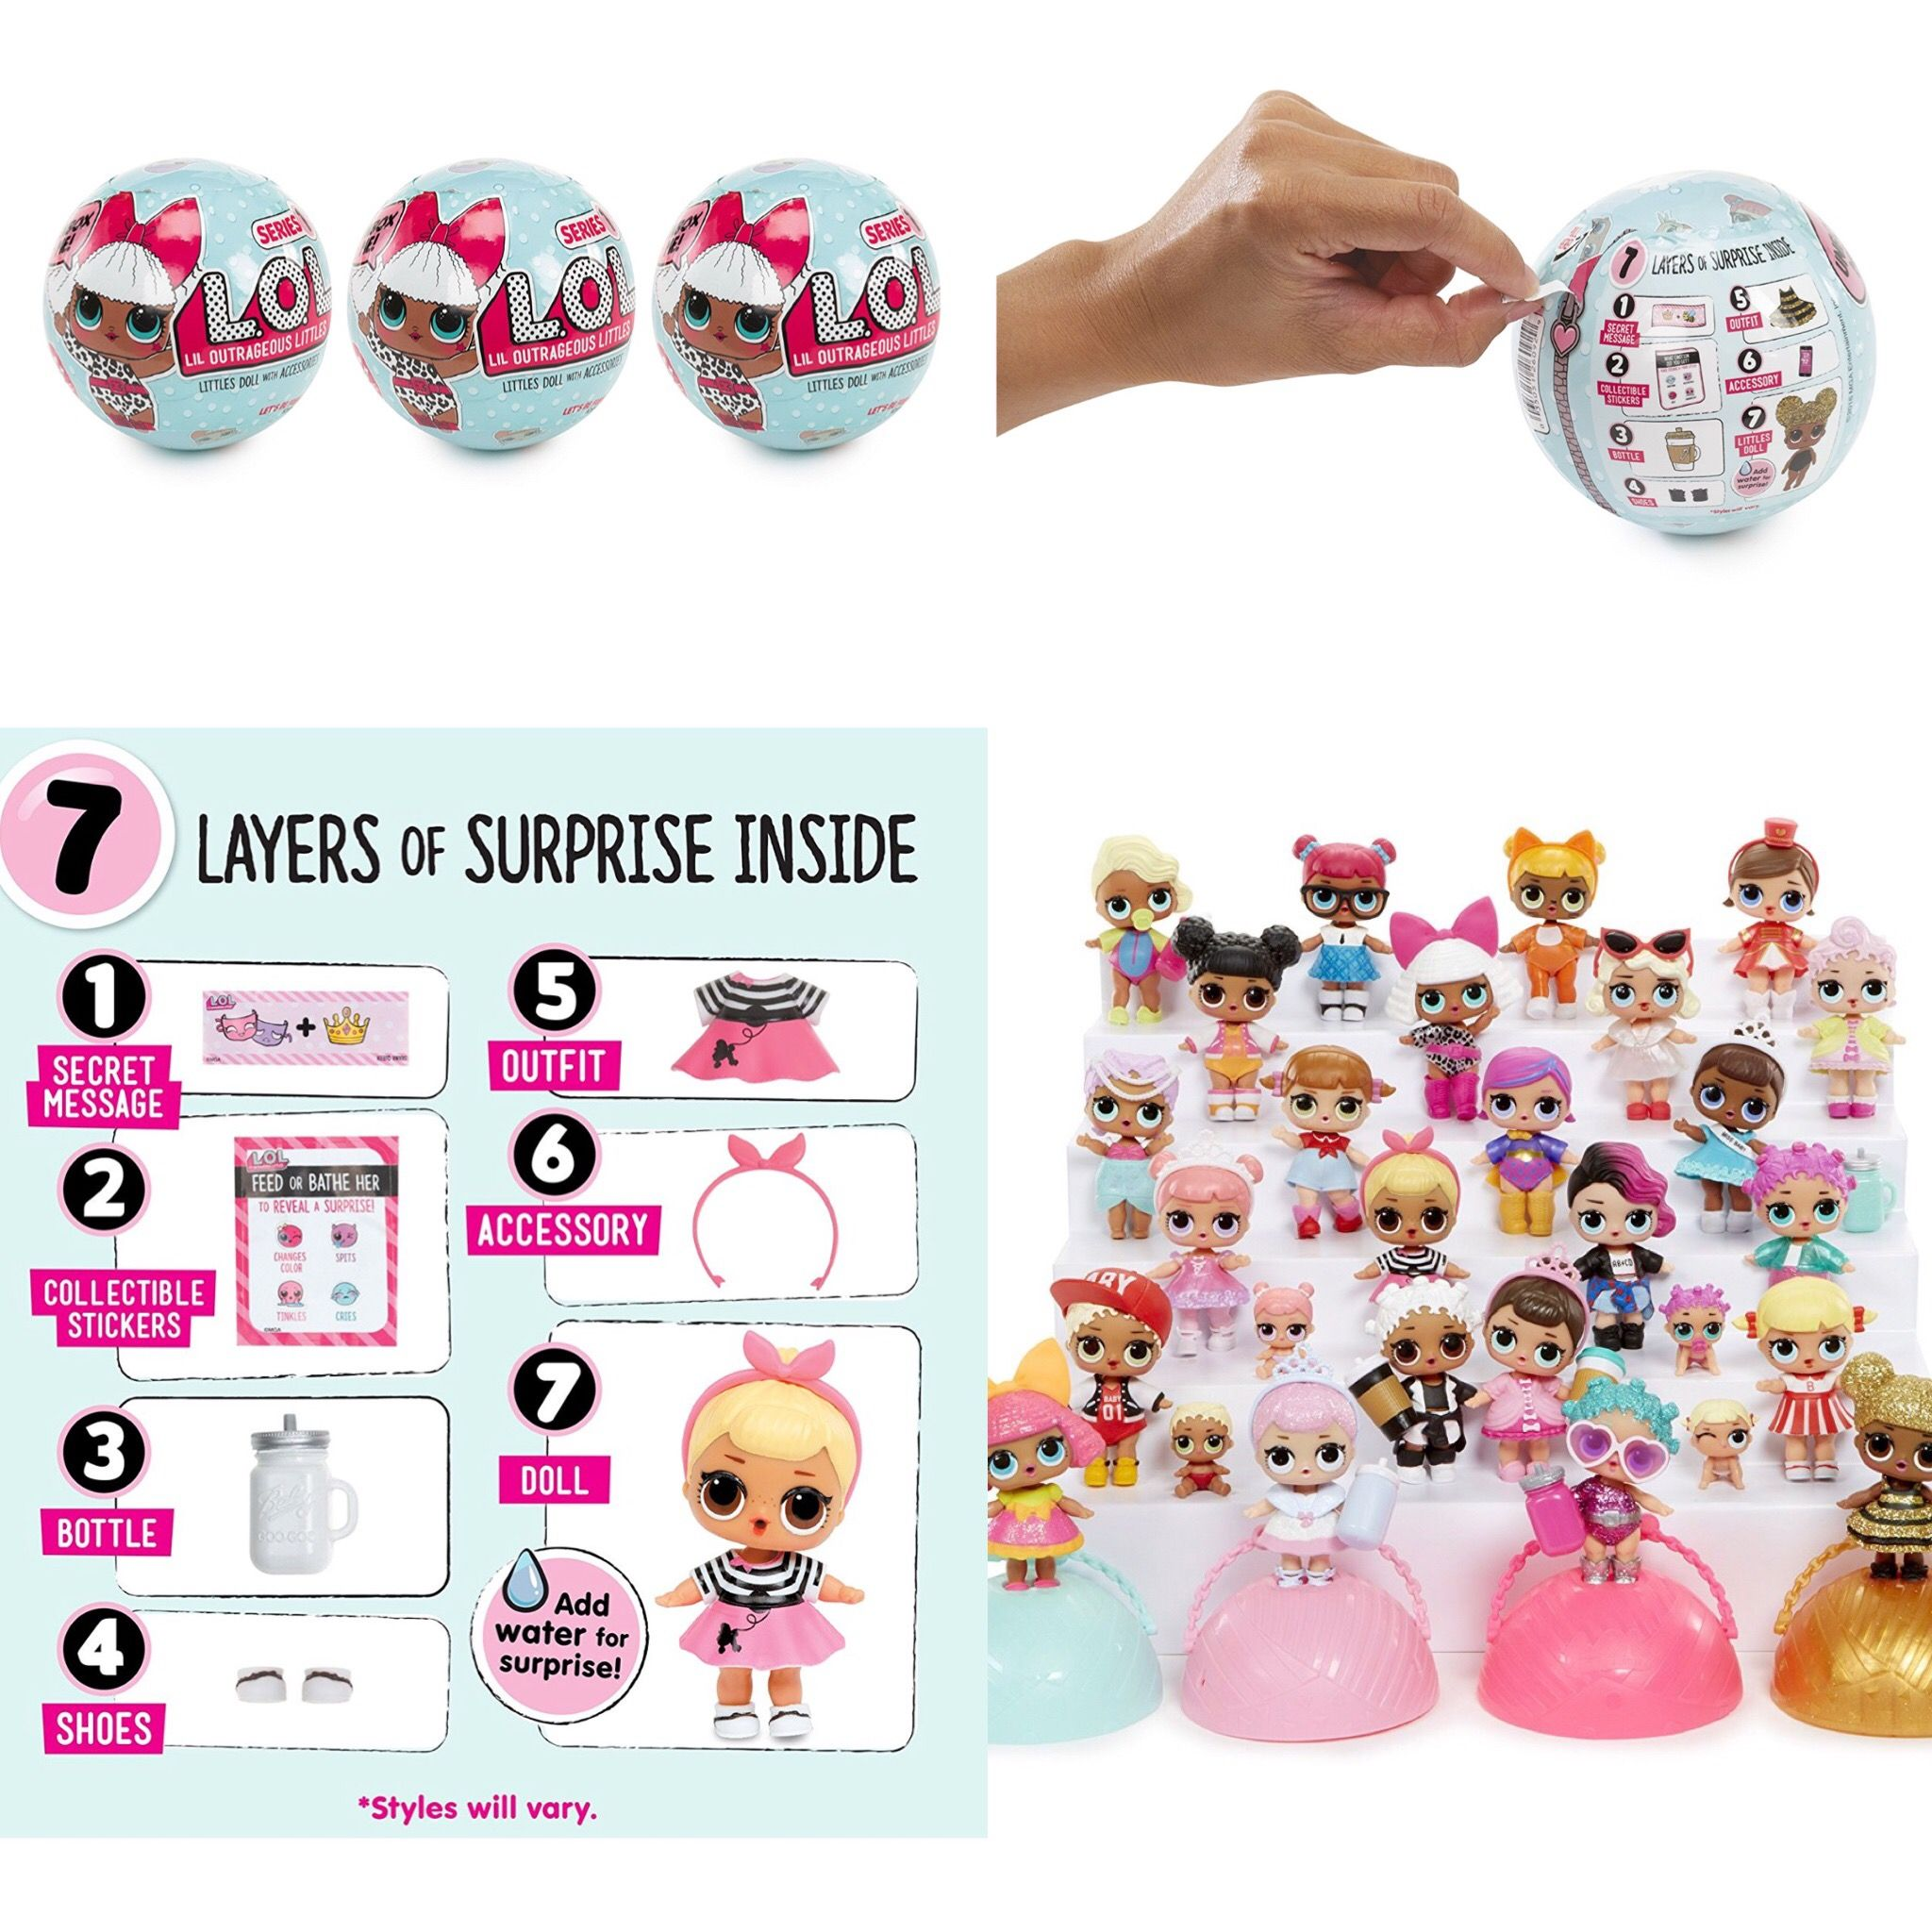 Pin by Kerri Carbone on LoL suprises 7 layers, Dolls, Toys